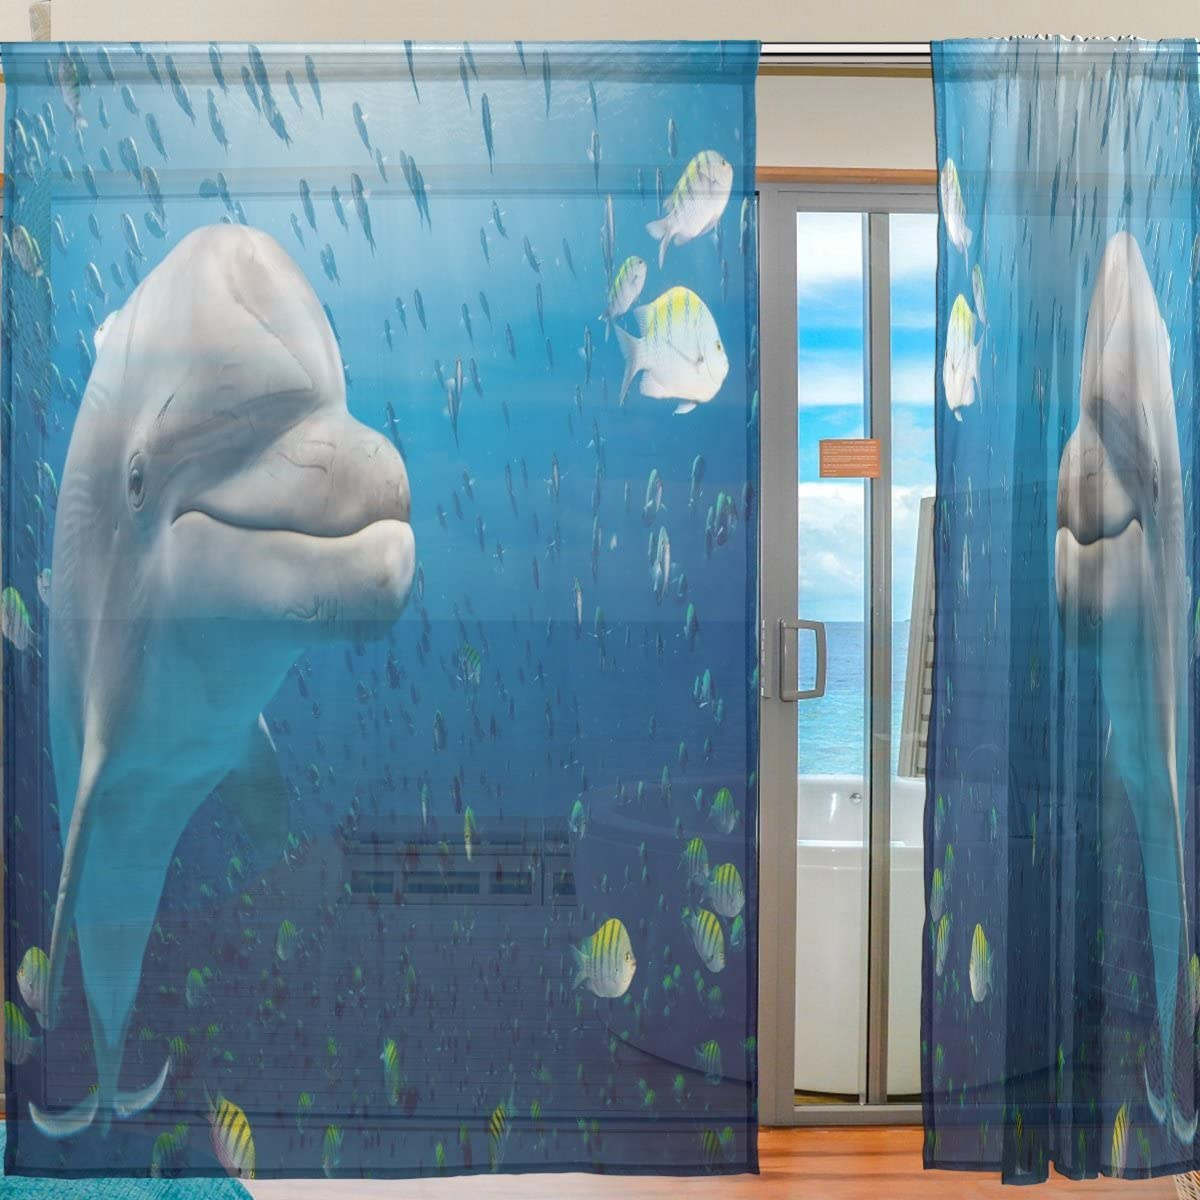 Oreayn Tropical Fishes Sea Dolphin Sheer Curtain for Living Room Bedroom,55 x 84 Inches Long,Blue,Window Treatments,Rod Pocket,Polyester Fabric,Set of 2 Panels